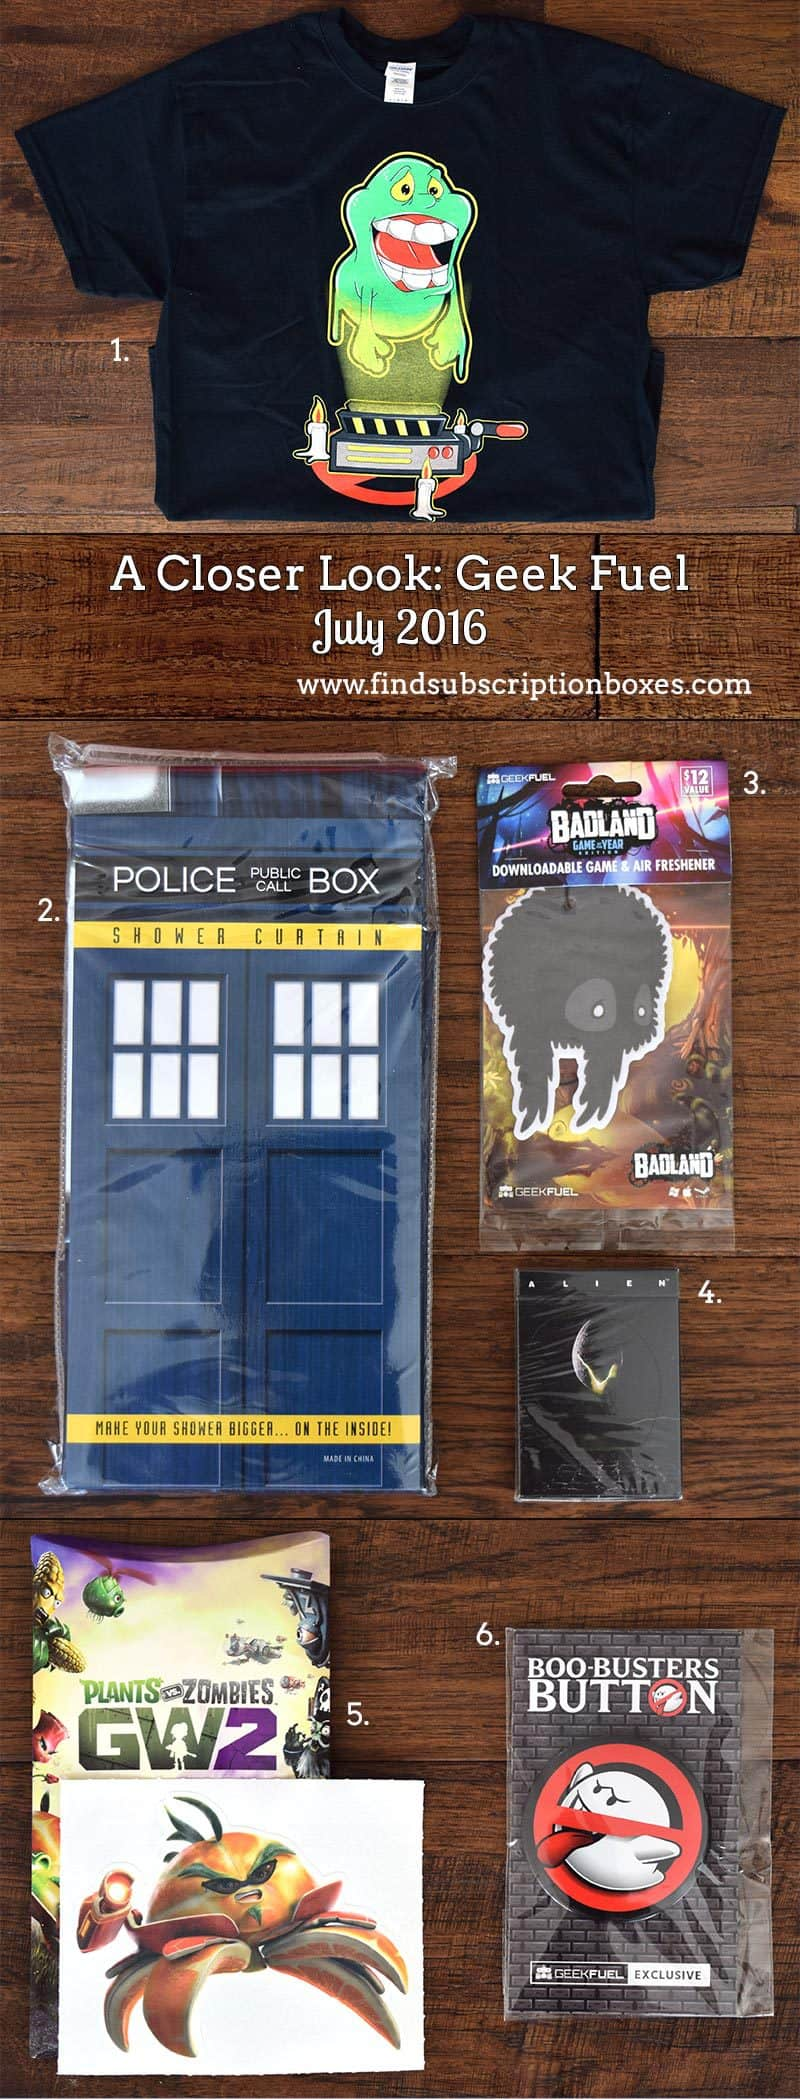 July 2016 Geek Fuel Review - Inside the Box